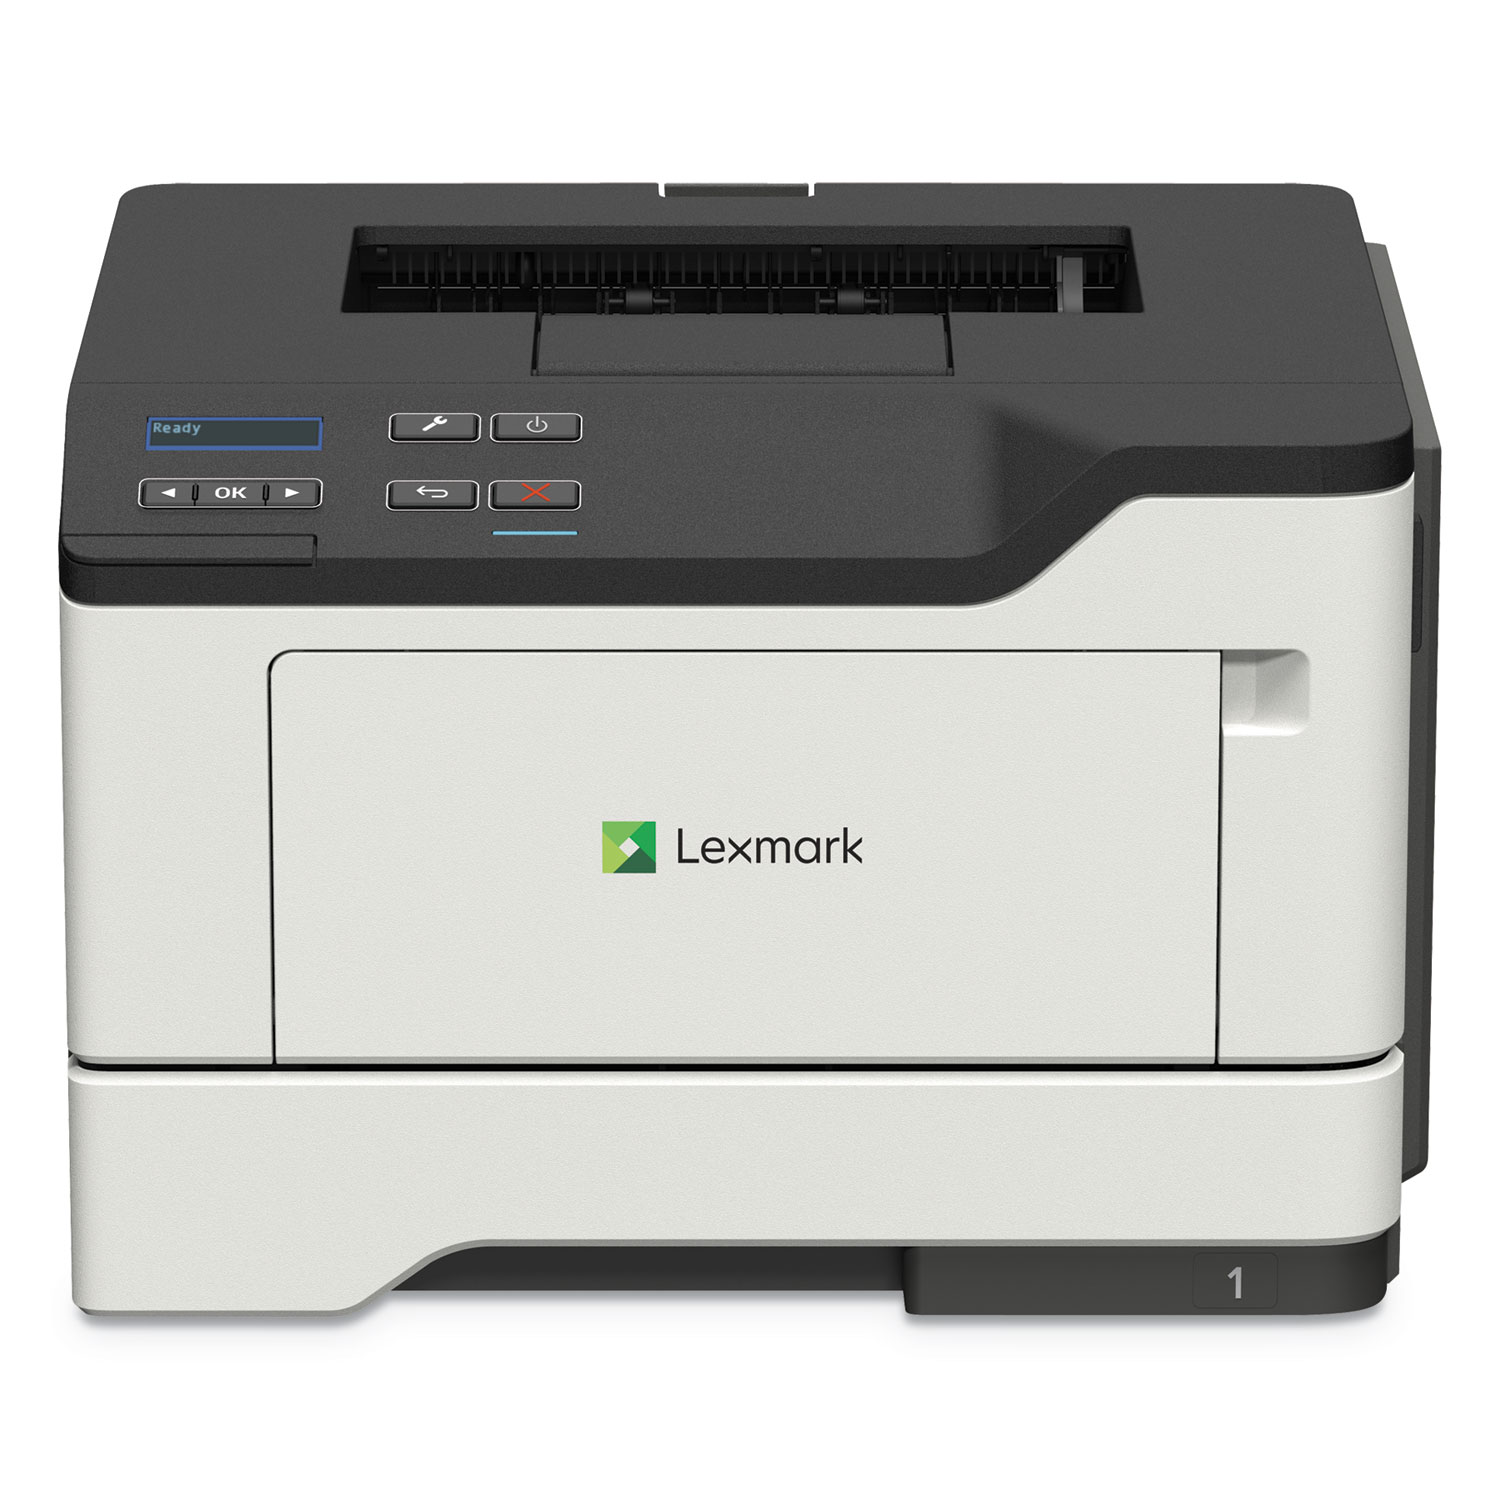 MS321dn Laser Printer